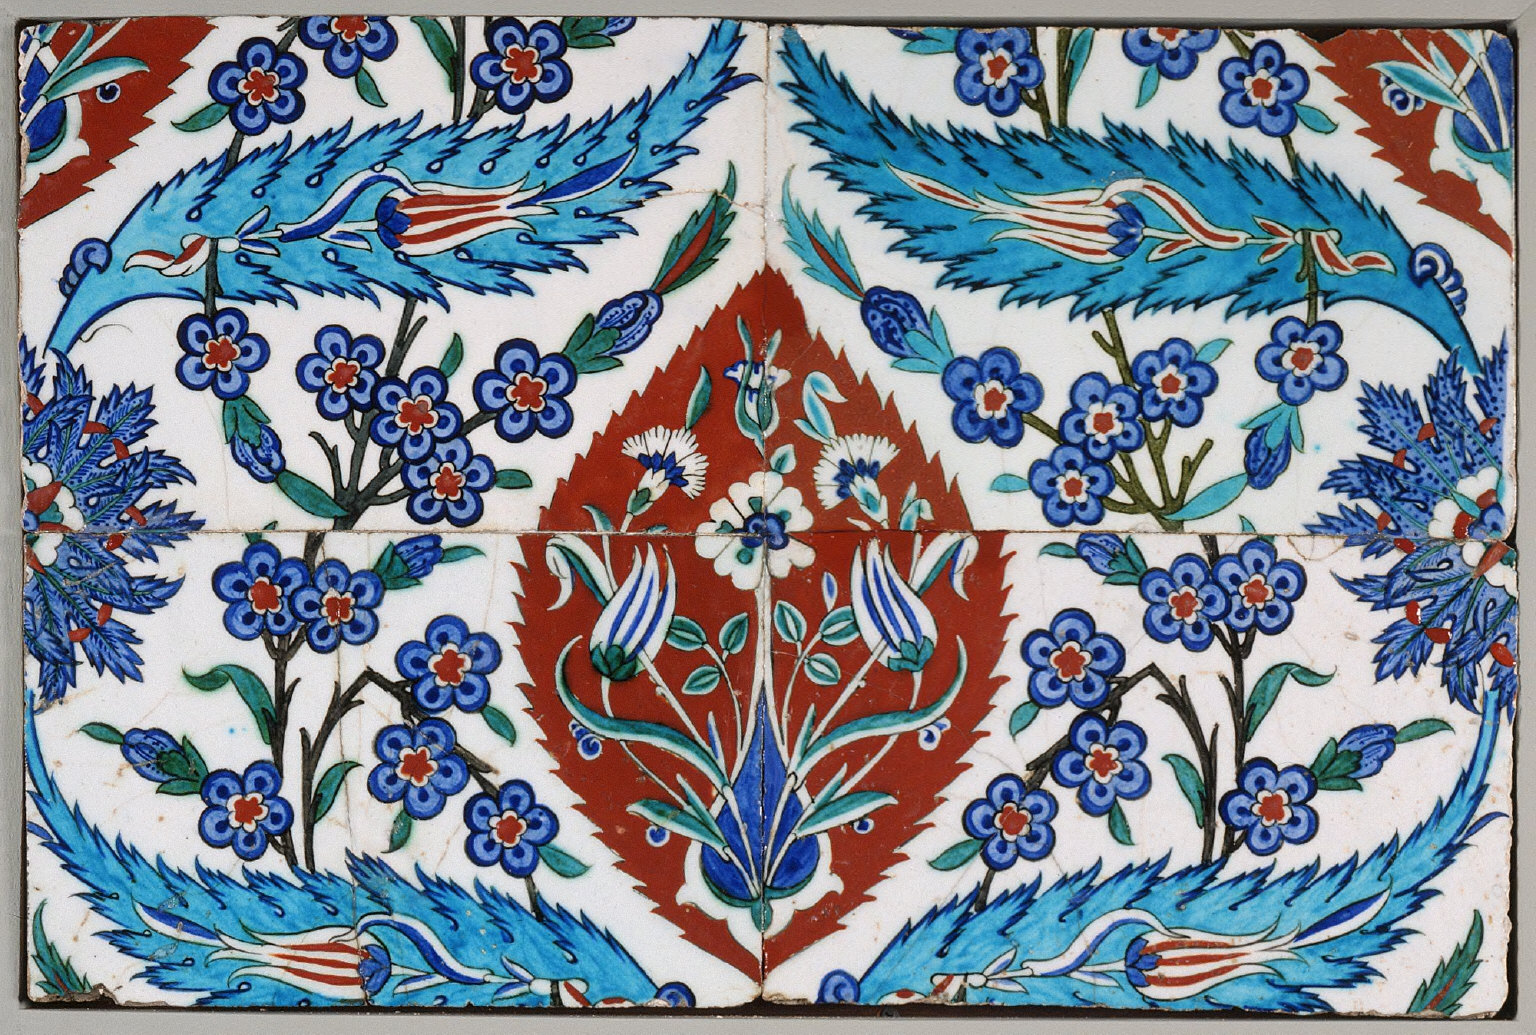 A Panel of Four Tiles